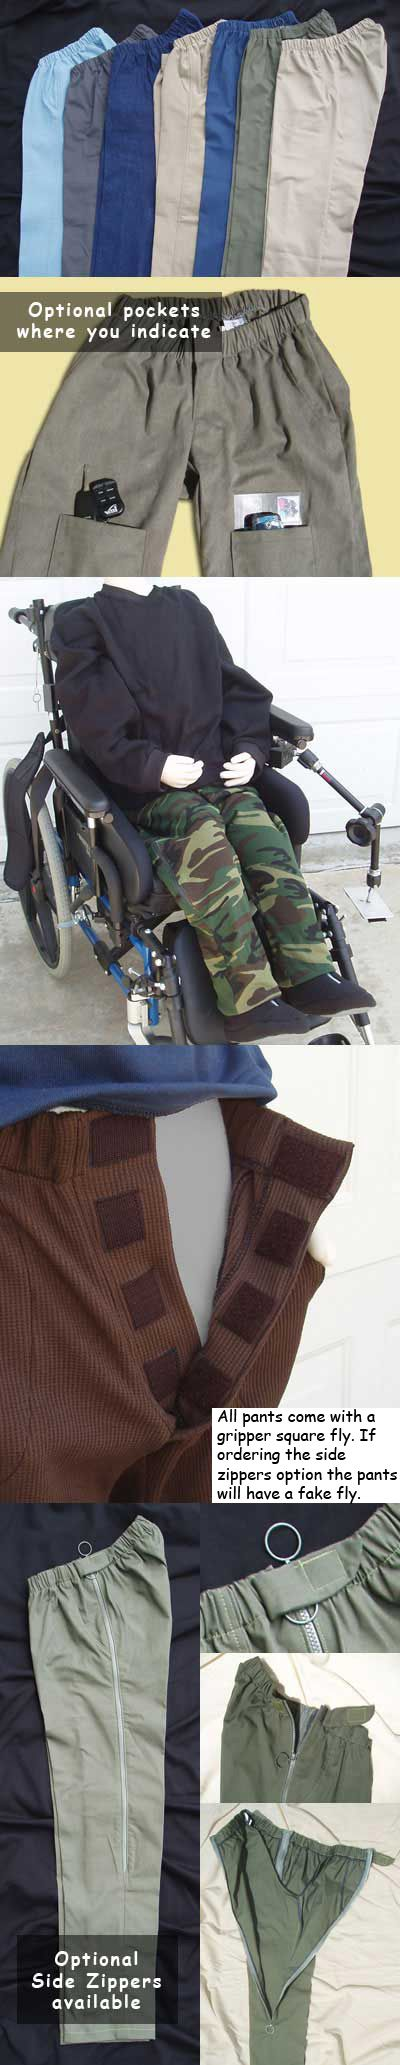 Sitter pants for the wheelchair user.